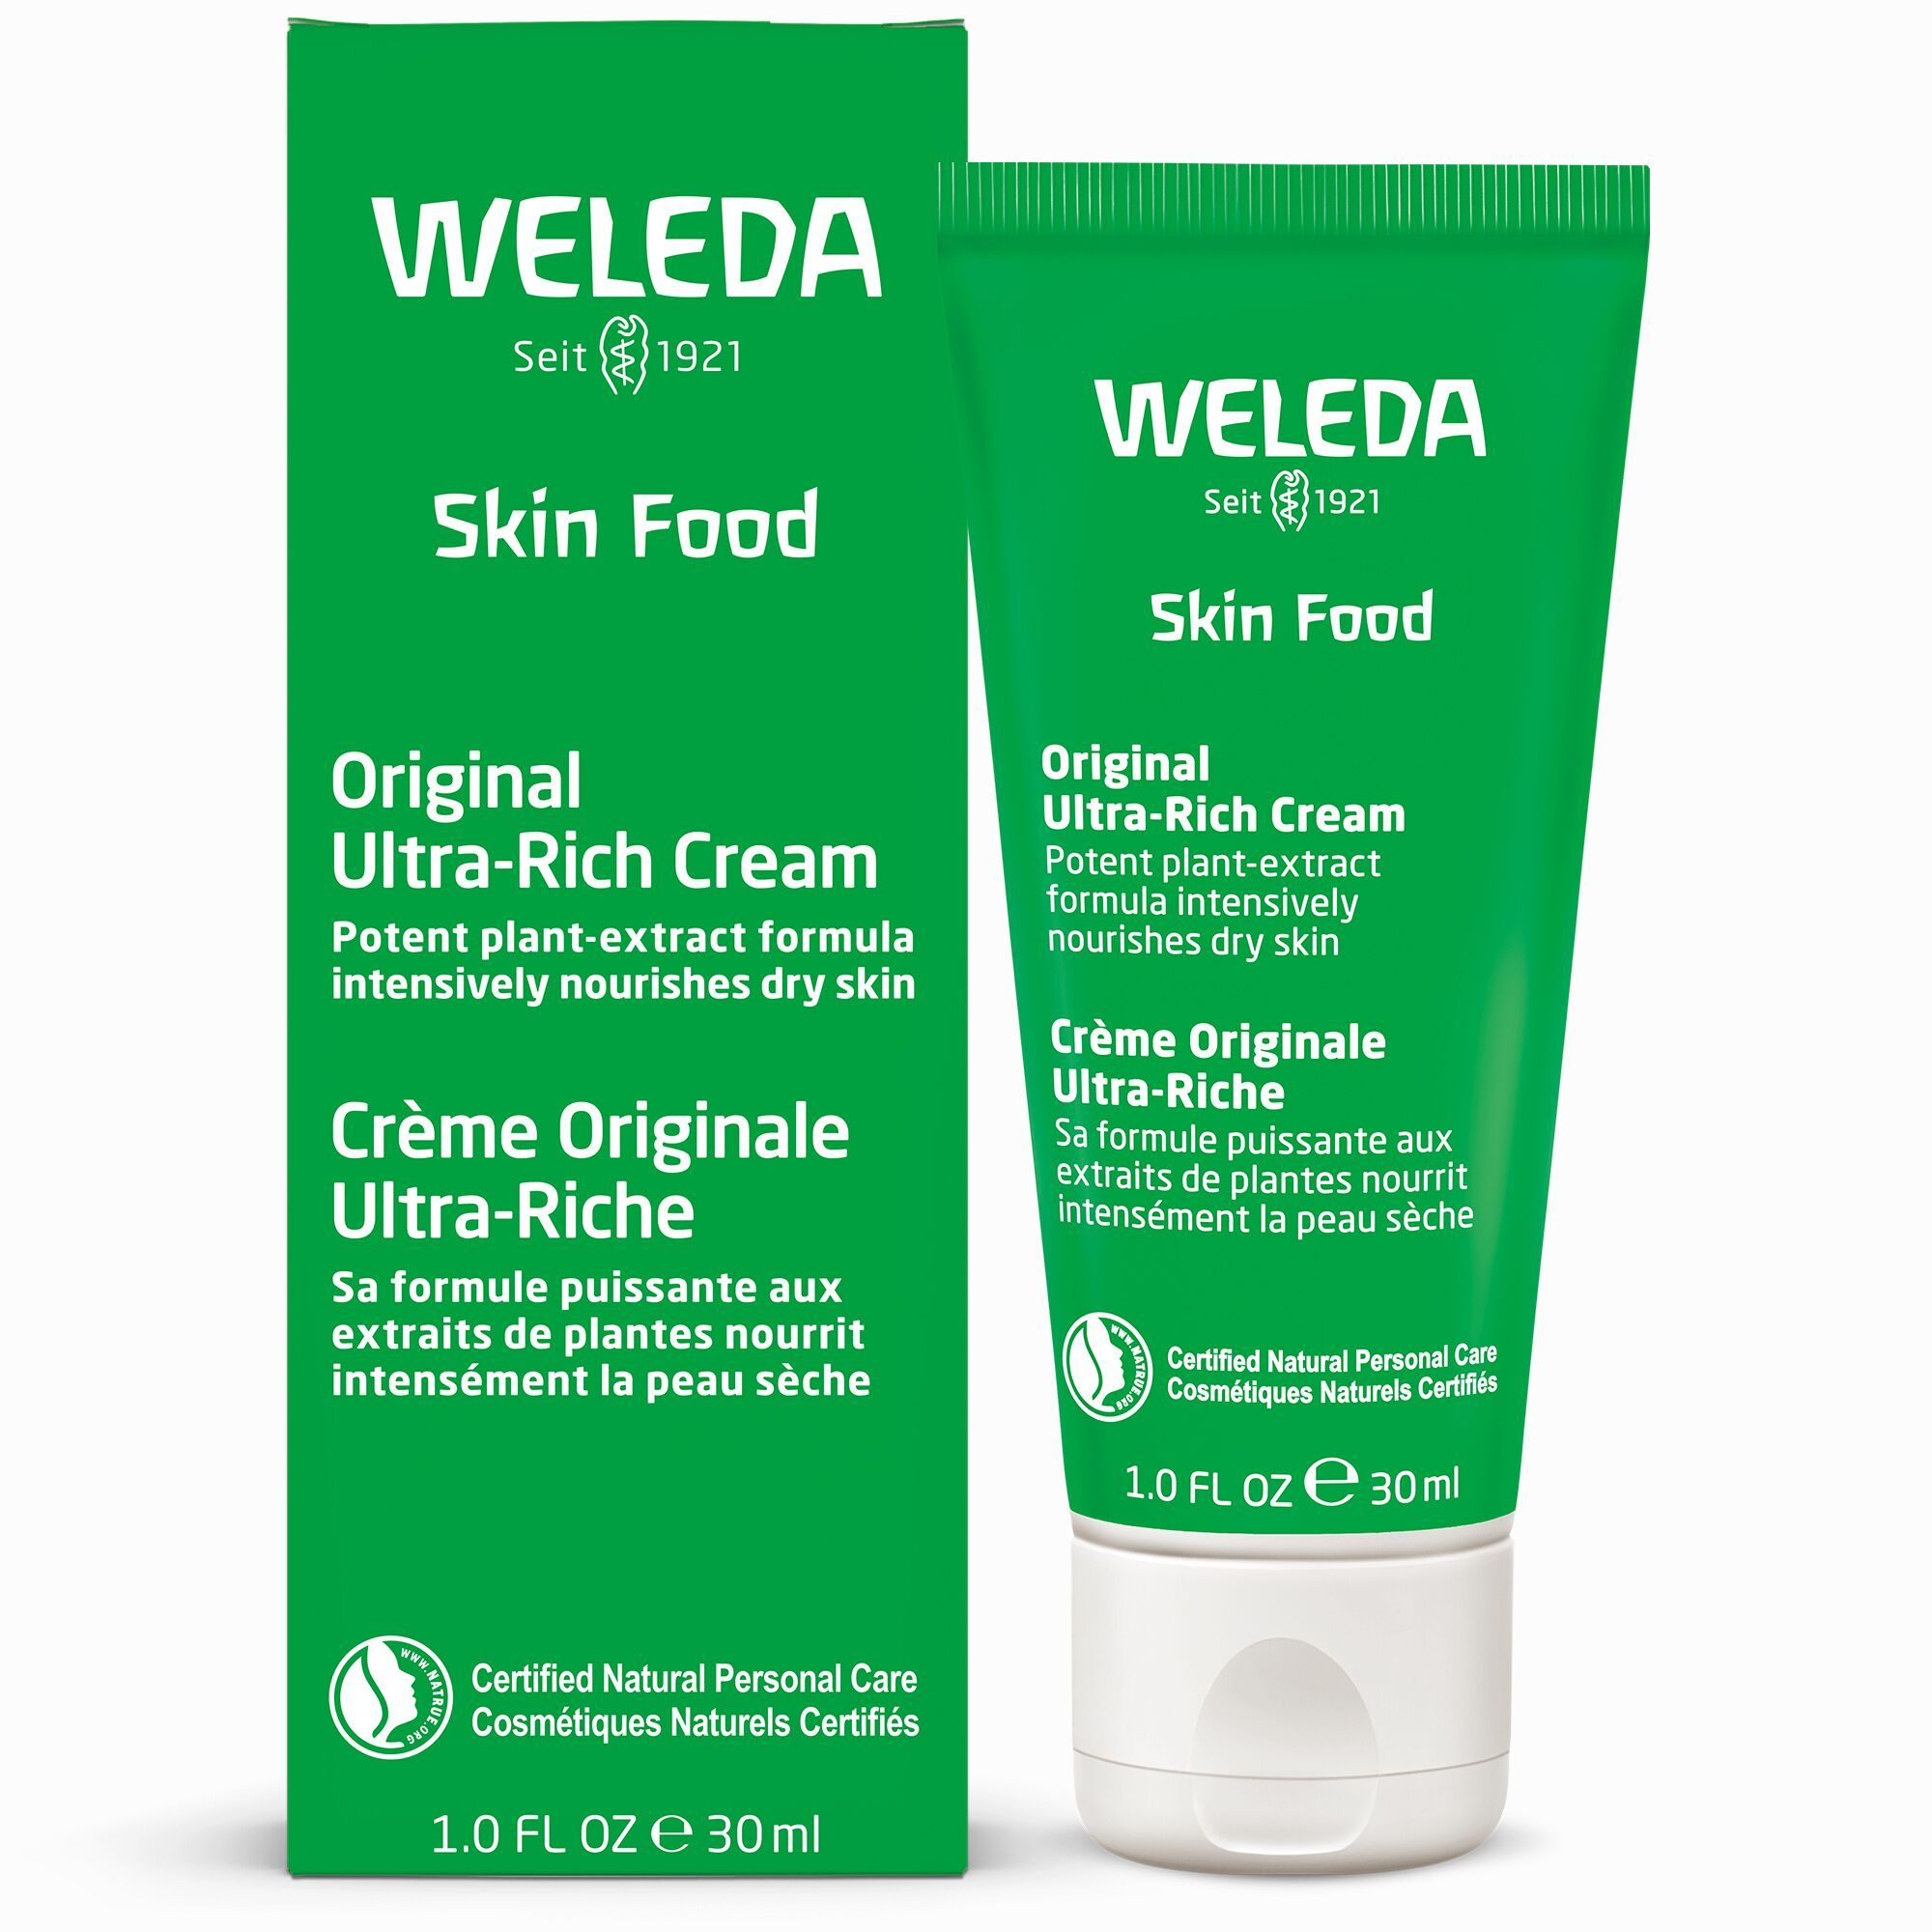 Personal Care - Weleda - Skin Food, 30g